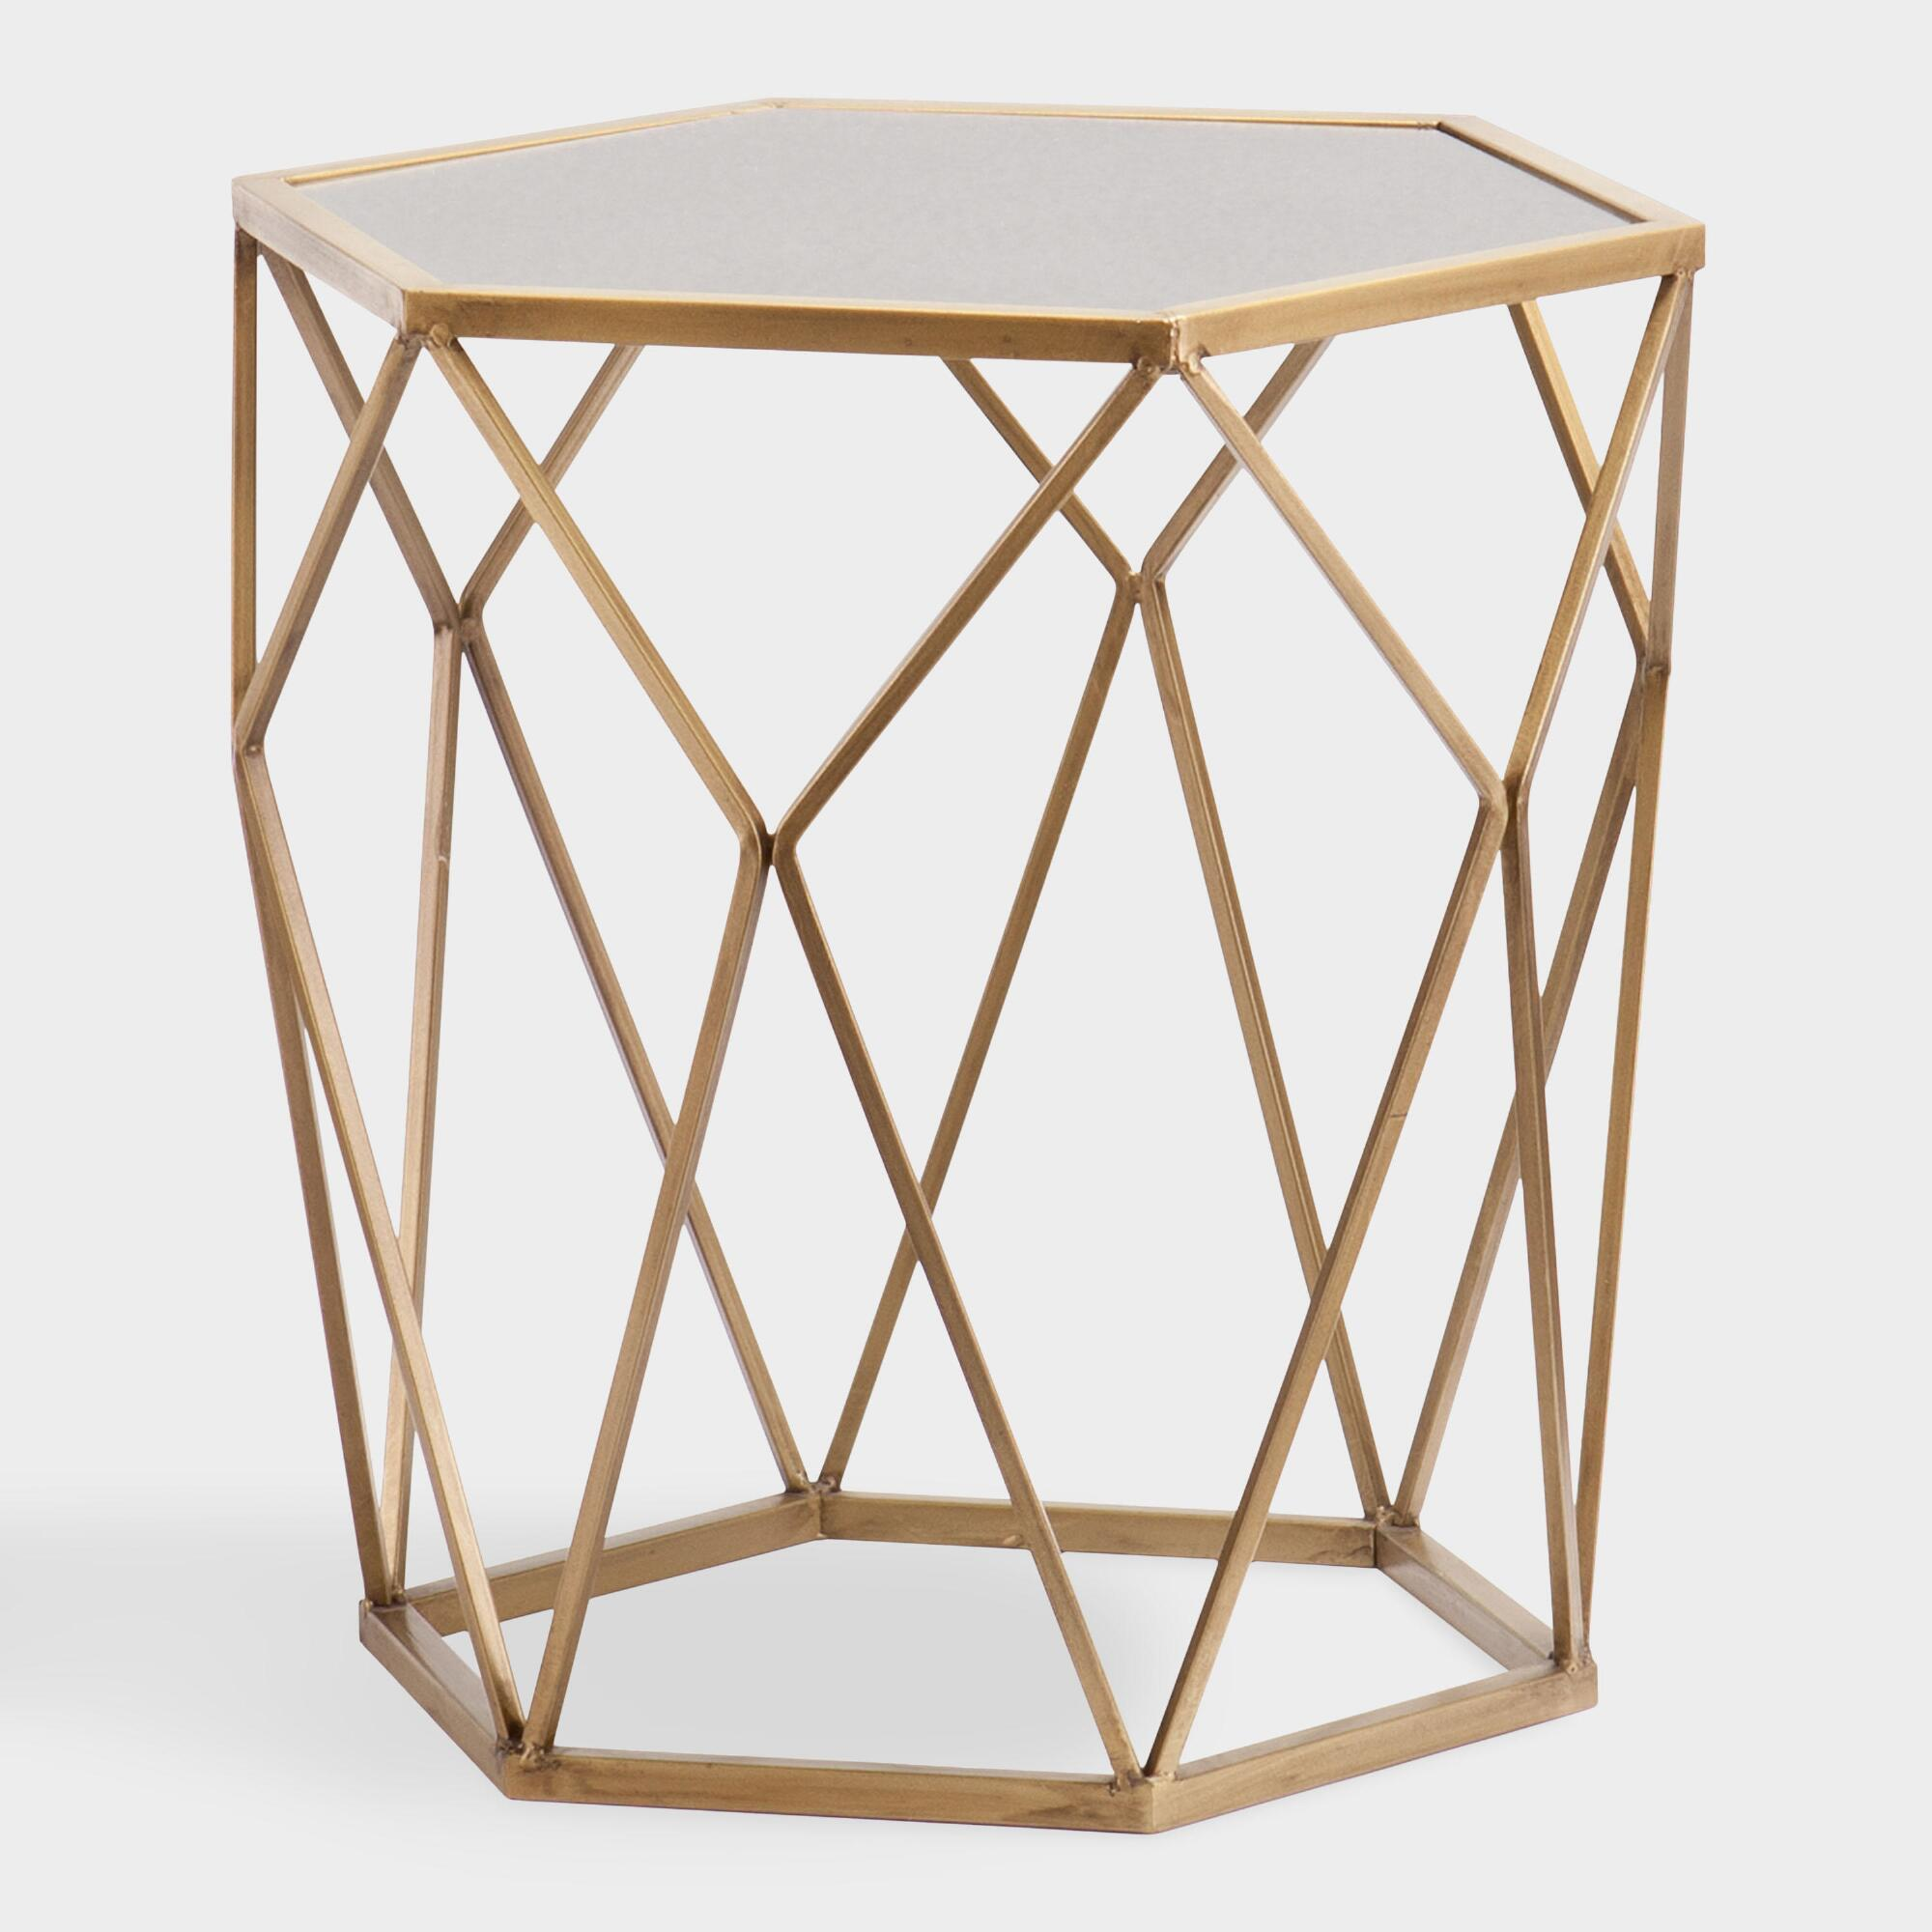 gold geometric mirrored adair accent table world market metal and wood round distressed gray end outdoor tablecloth pattern drum throne deck furniture vitra chair replica silver